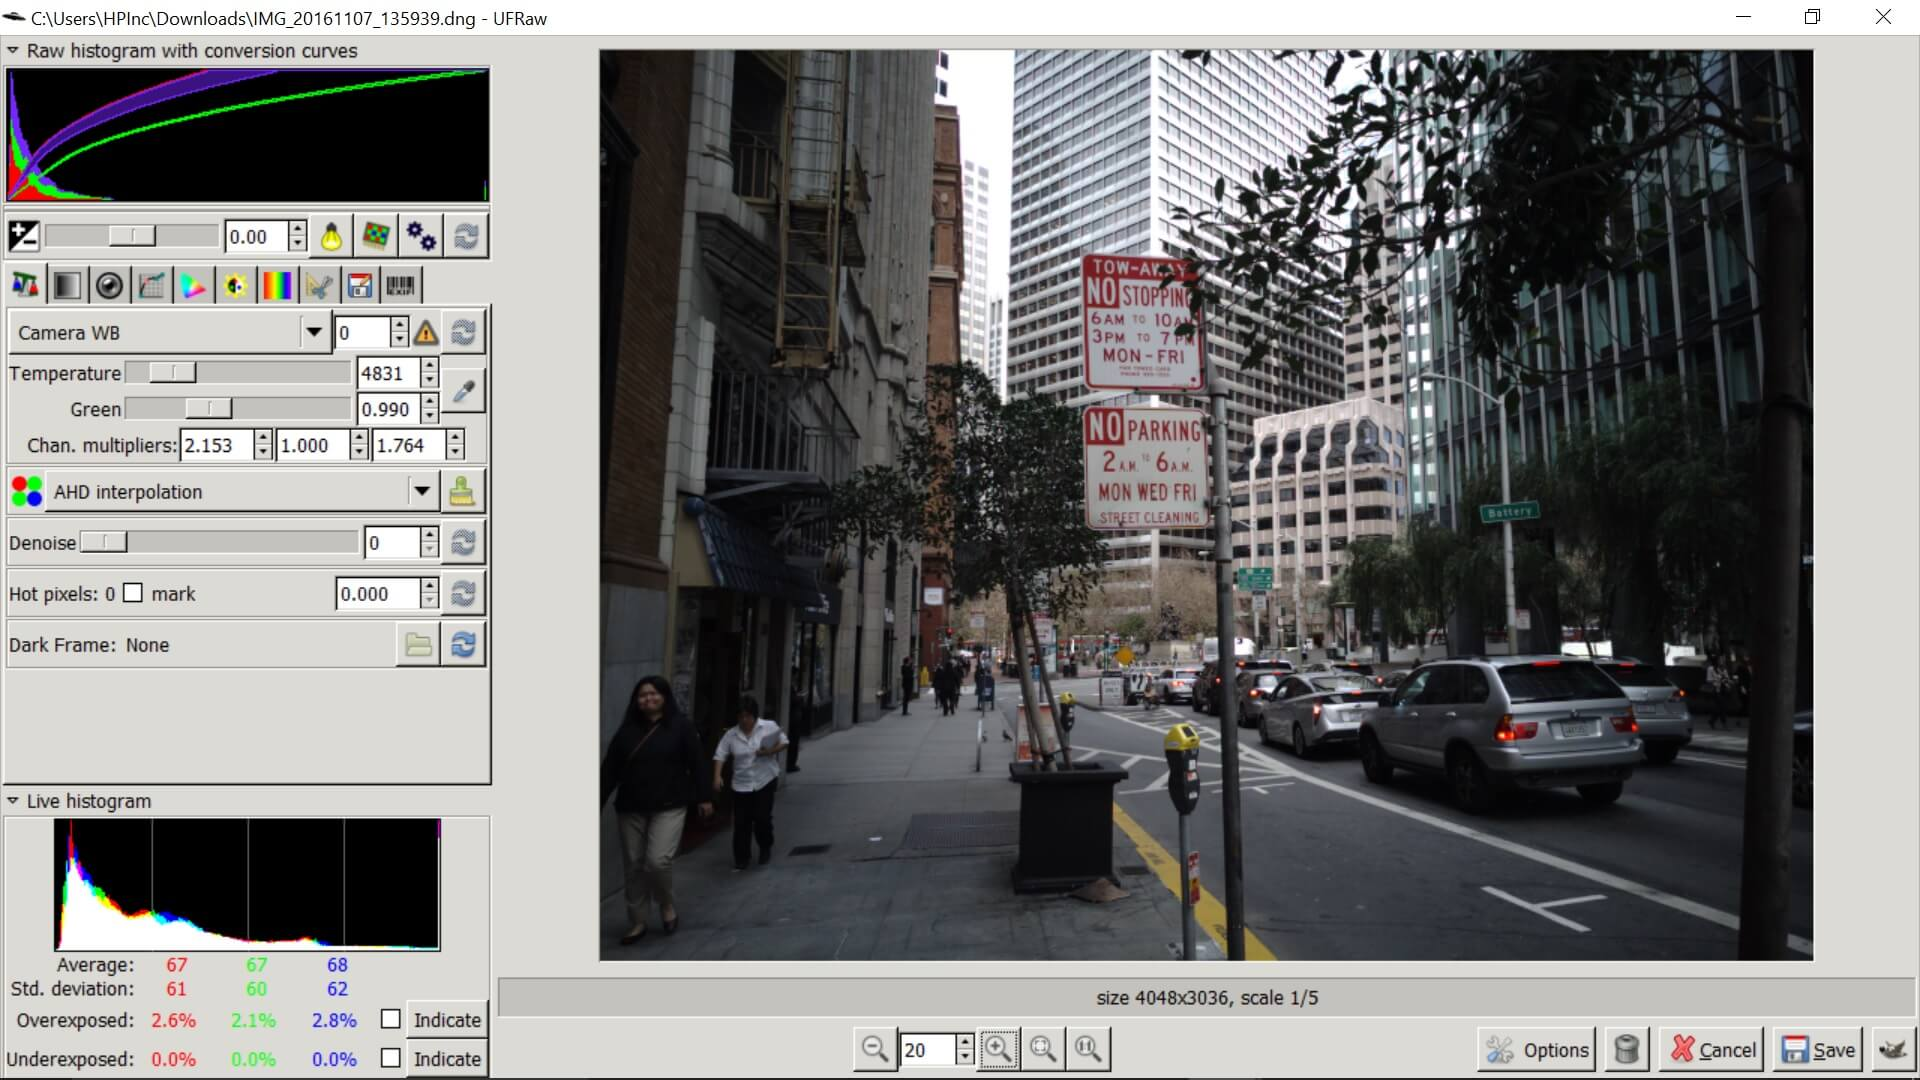 How to shoot full-resolution photos in RAW on the Google